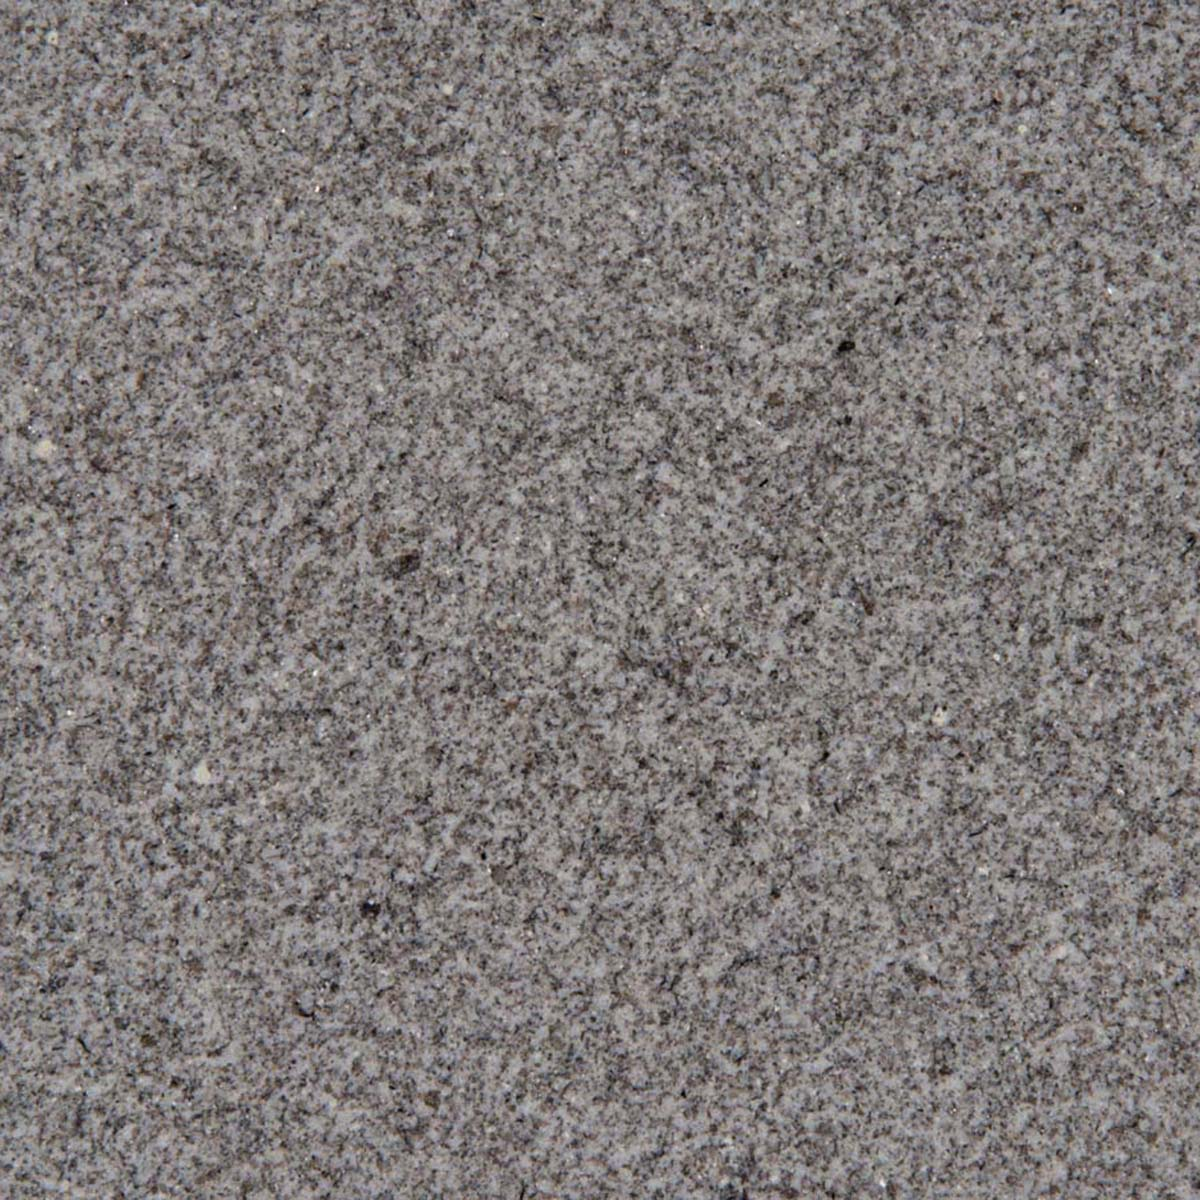 Gray Granite Kitchen: Granite Countertops, Granite Slabs